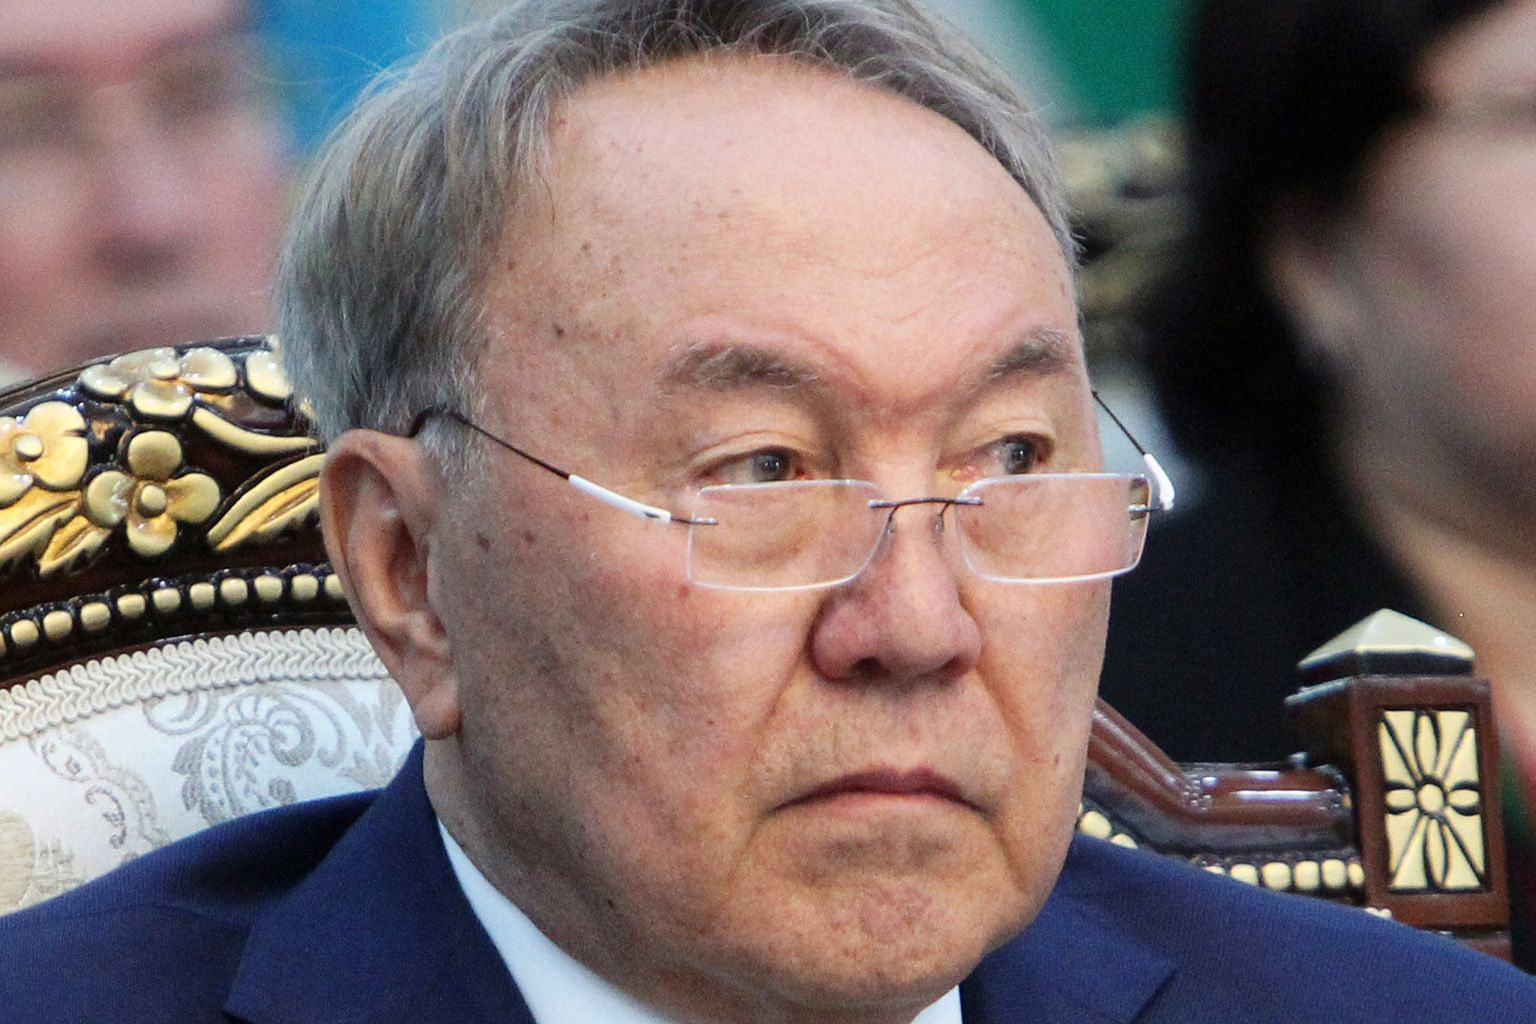 President Nursultan Nazarbayev, 78, has ruled Kazakhstan for nearly 30 years. He leaves no clear successor.